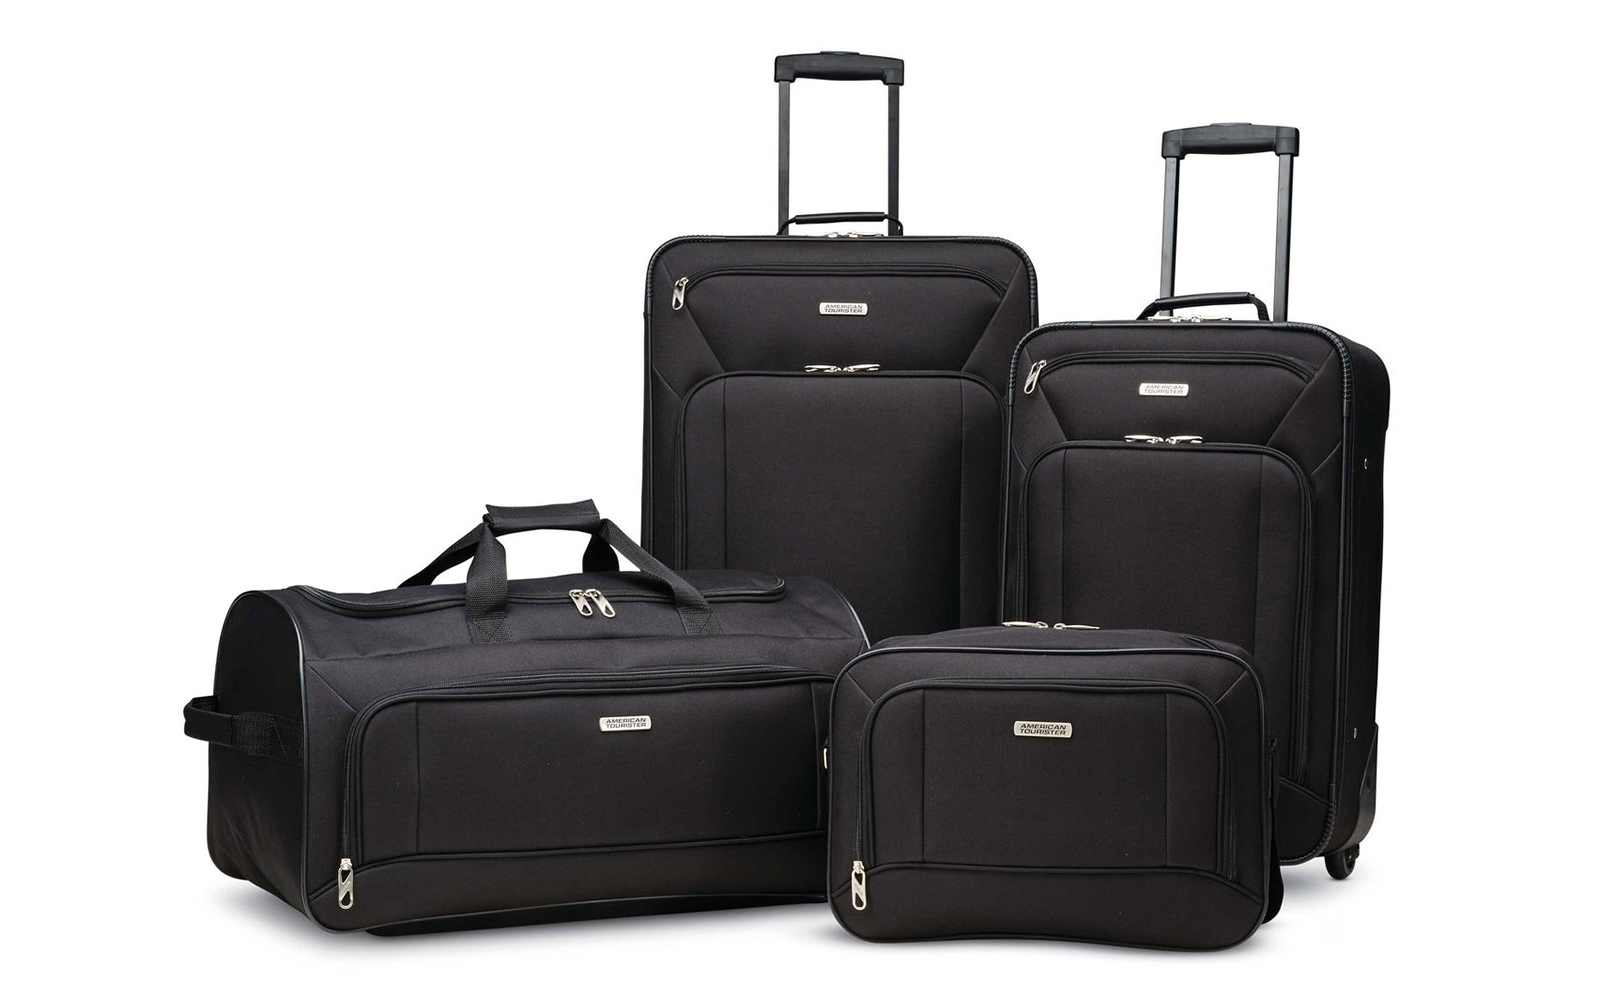 American Tourister Four-Piece Luggage Set